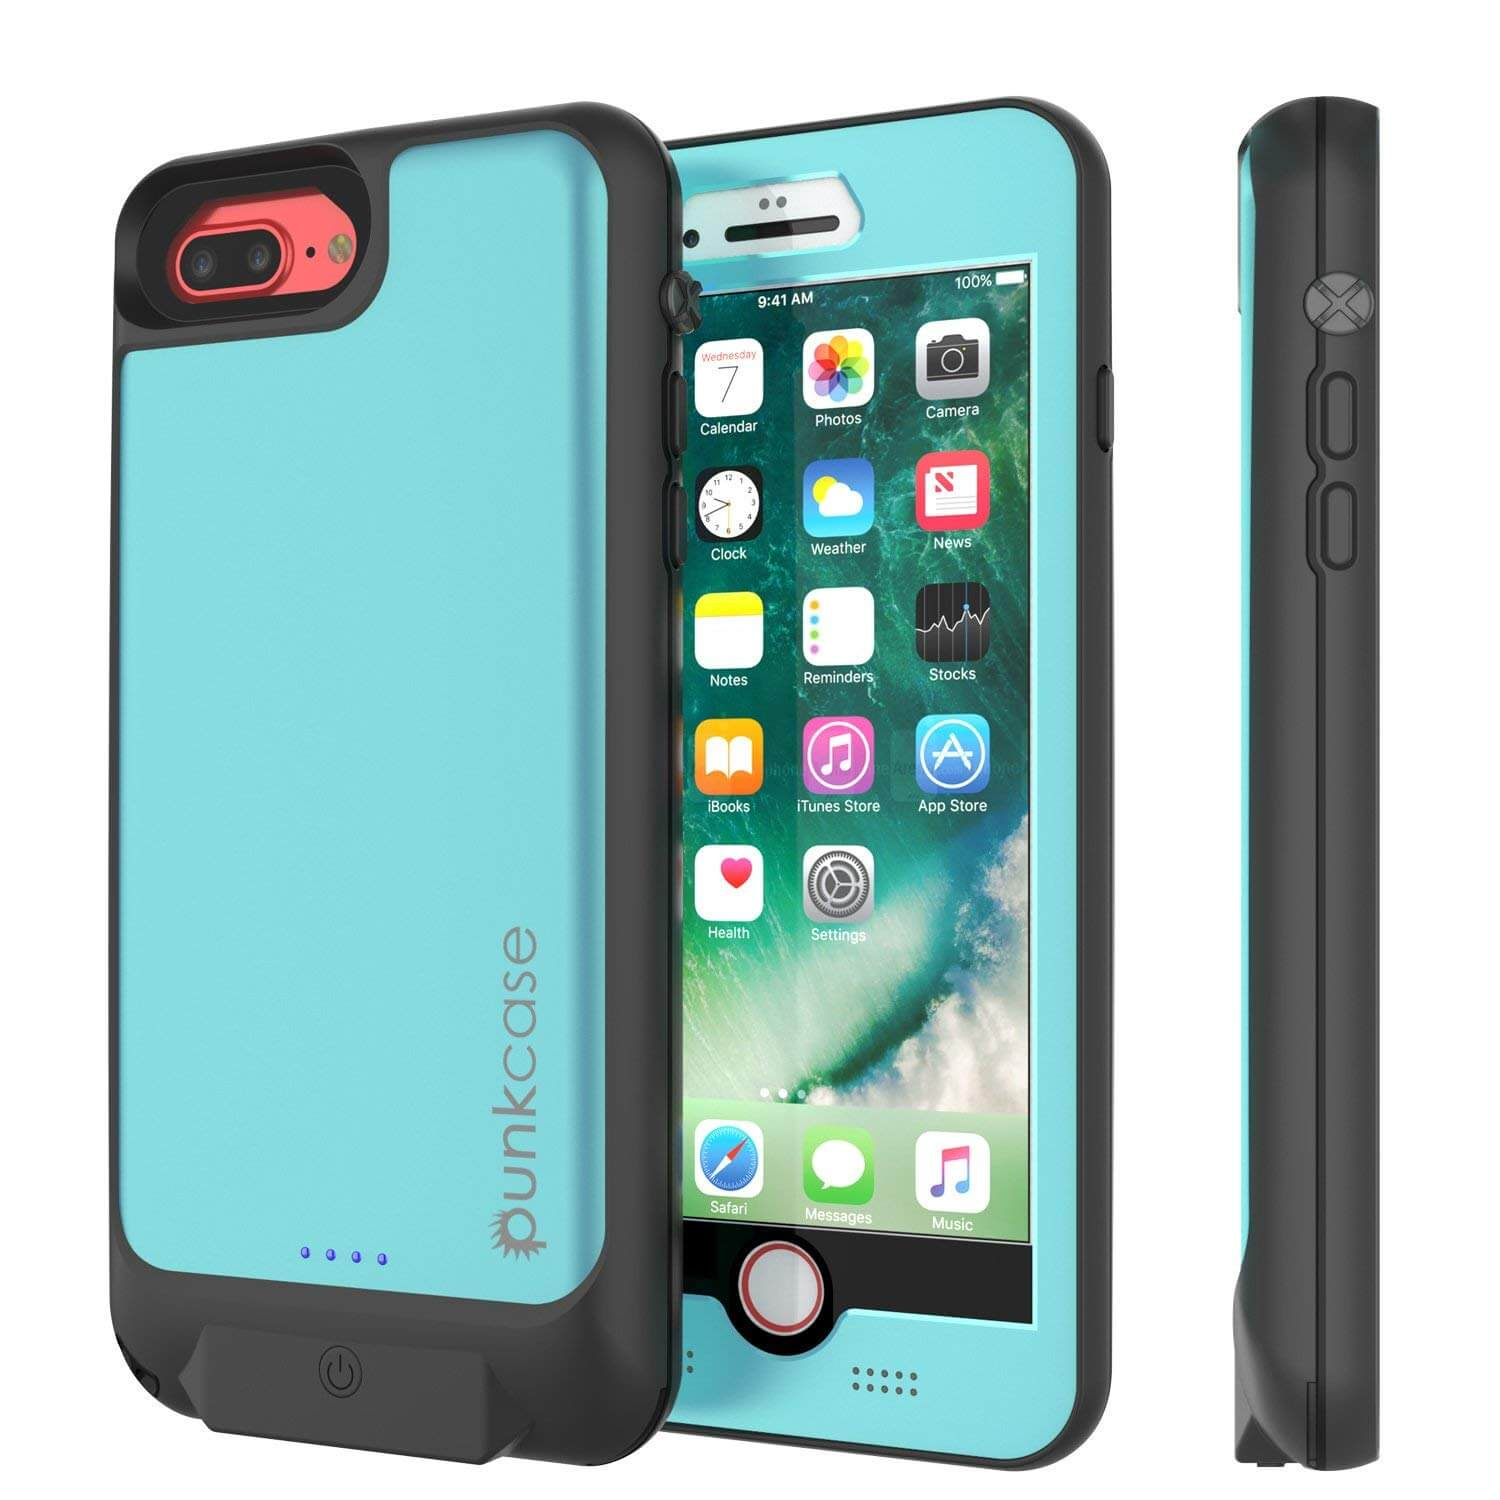 PunkJuice iPhone 8+/7+ Plus Battery Case Teal - Waterproof Slim Power Juice Bank with 4300mAh